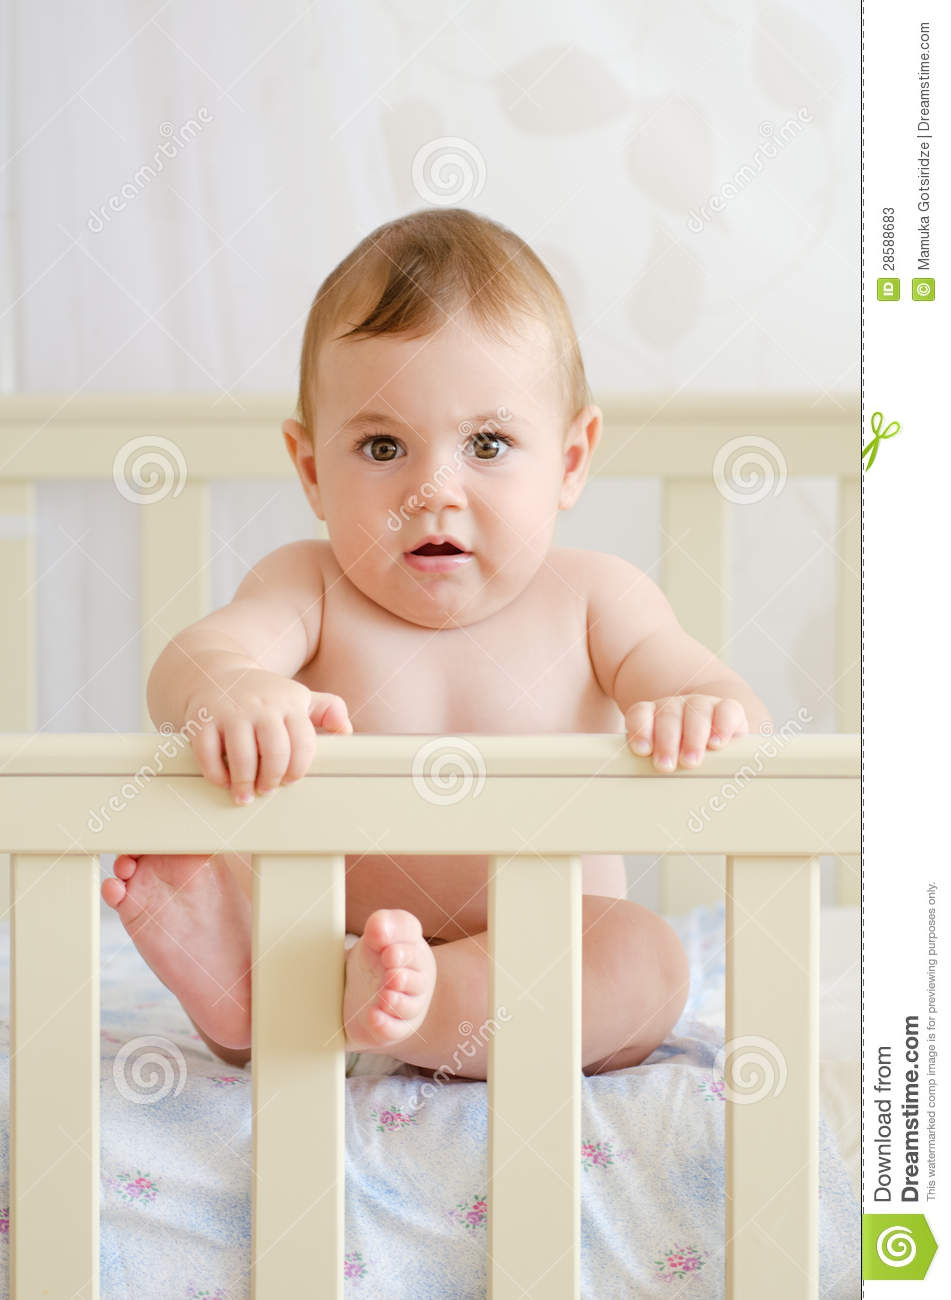 Baby Sitting In A Crib Stock Photos - Image 28588683-3484